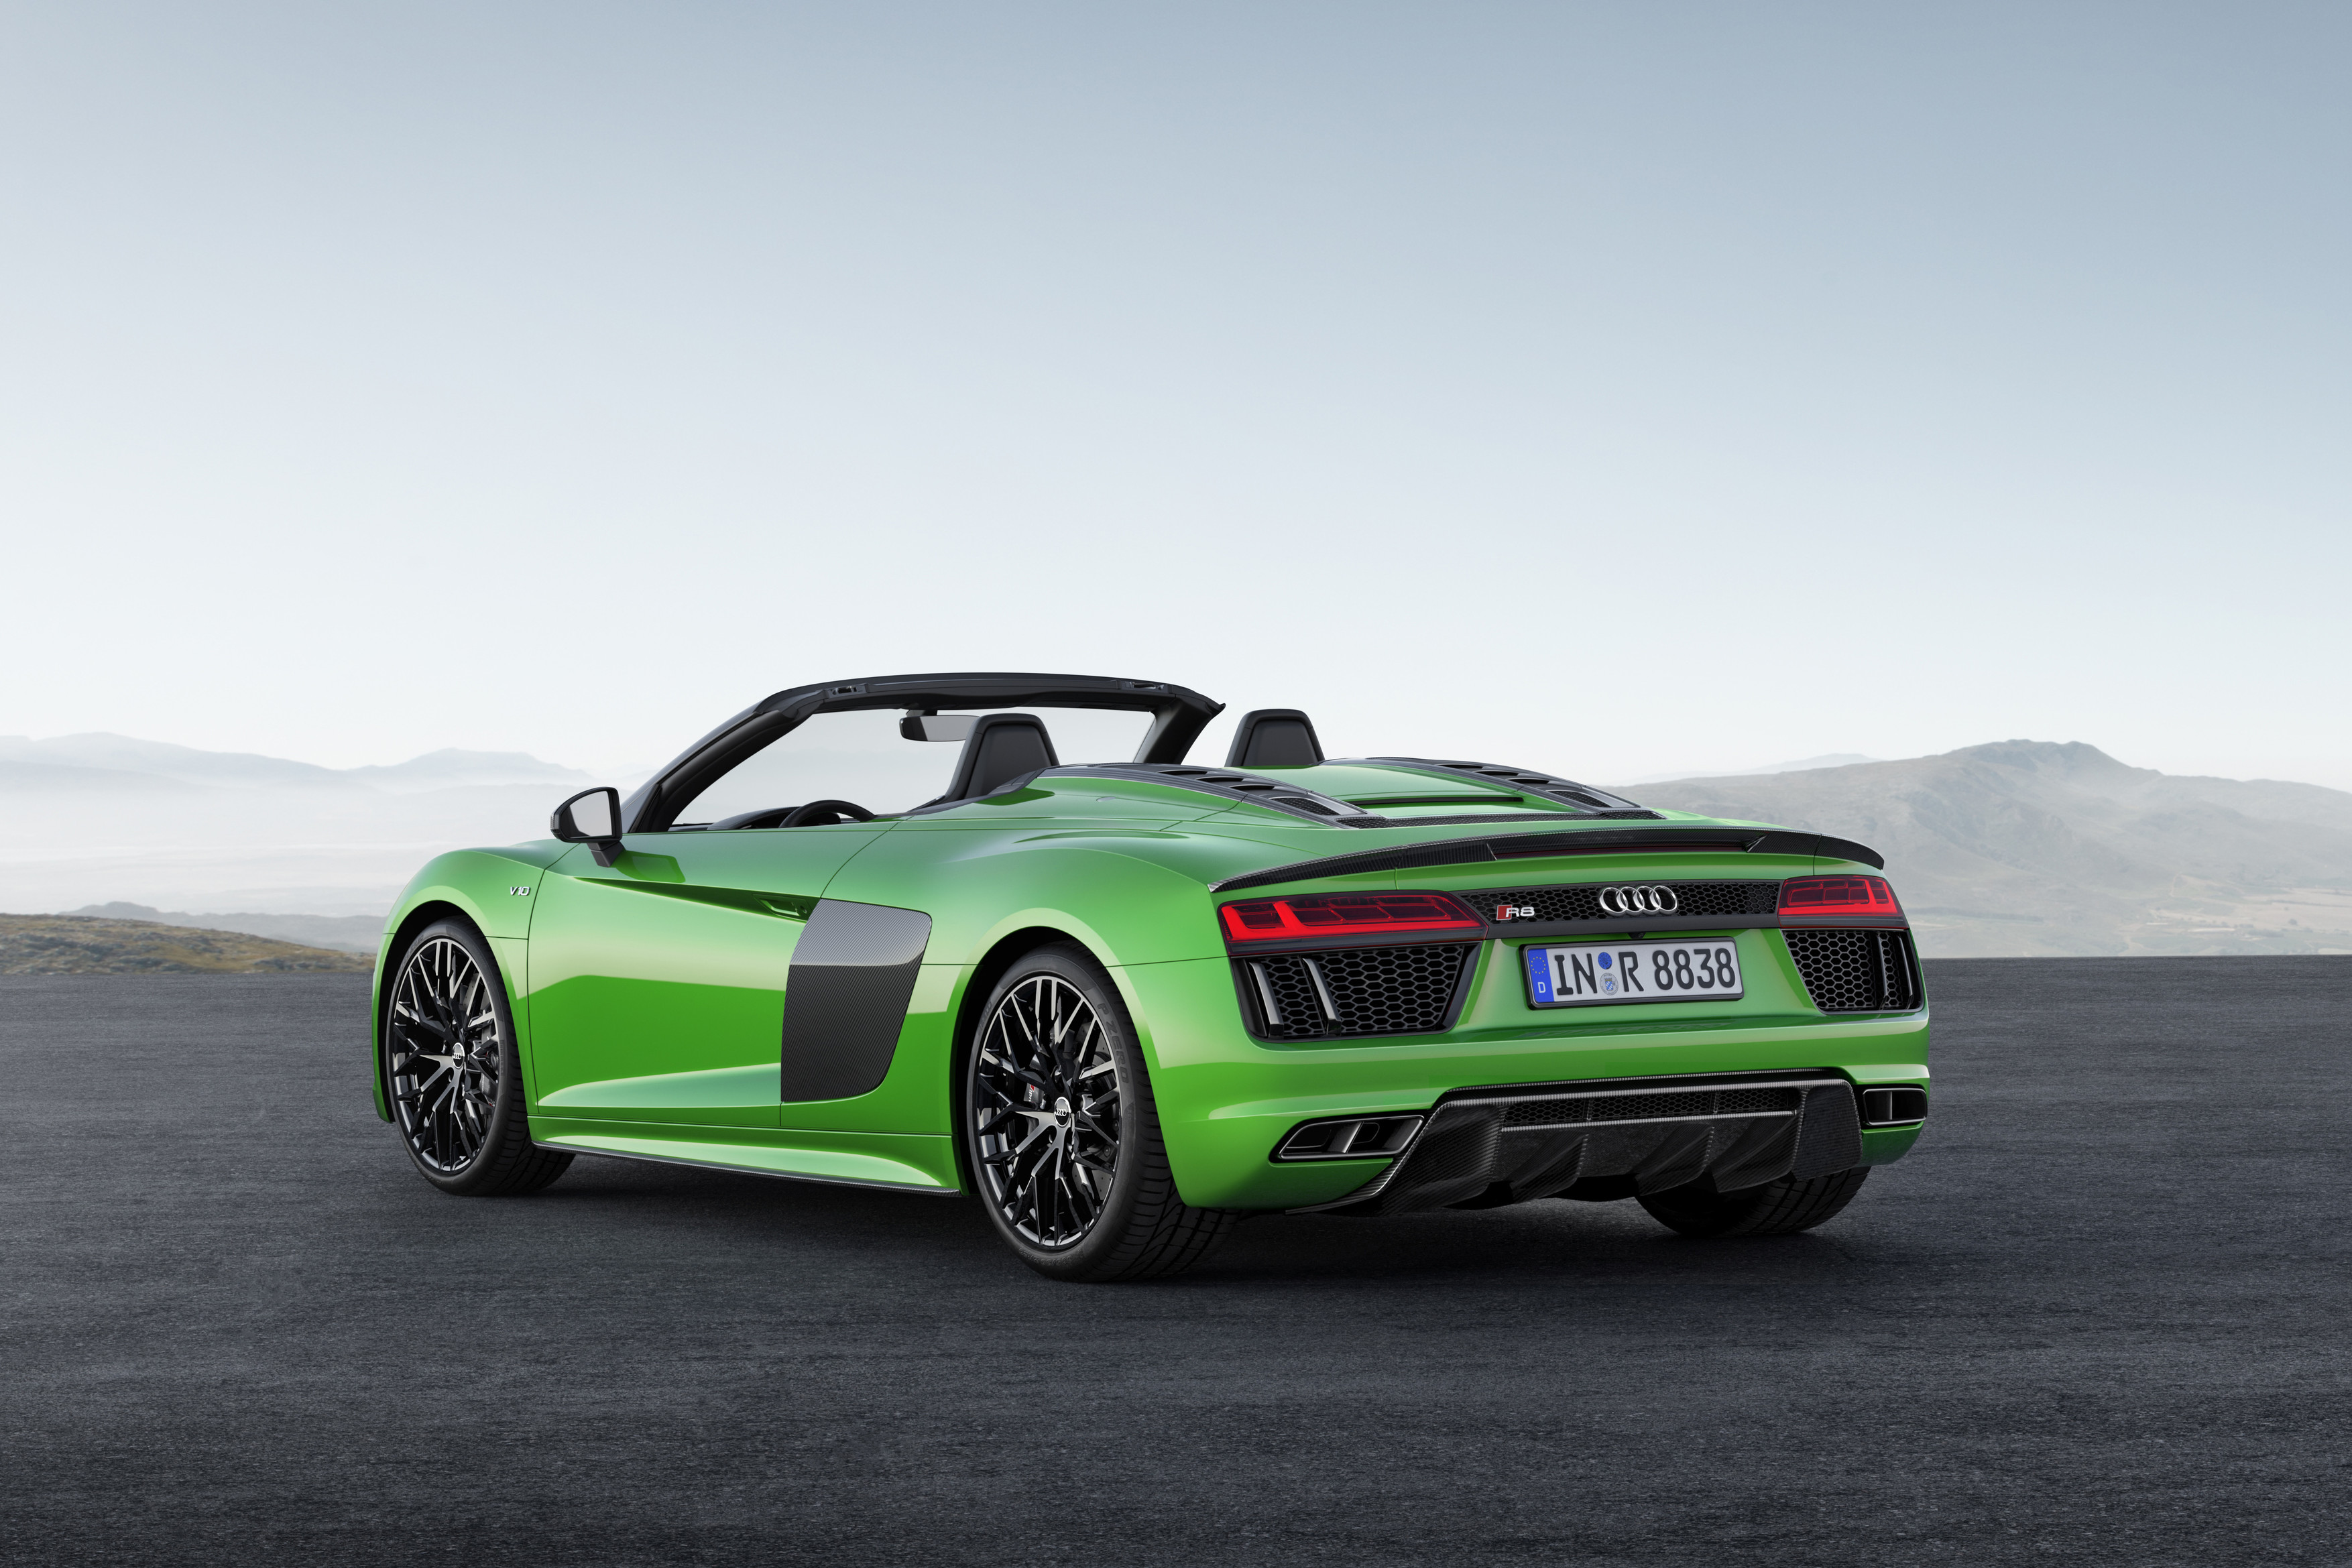 Audi R8 Spyder V10 Plus Is 610 Horsepower of Drop-Top Supercar Sweetness - The Drive